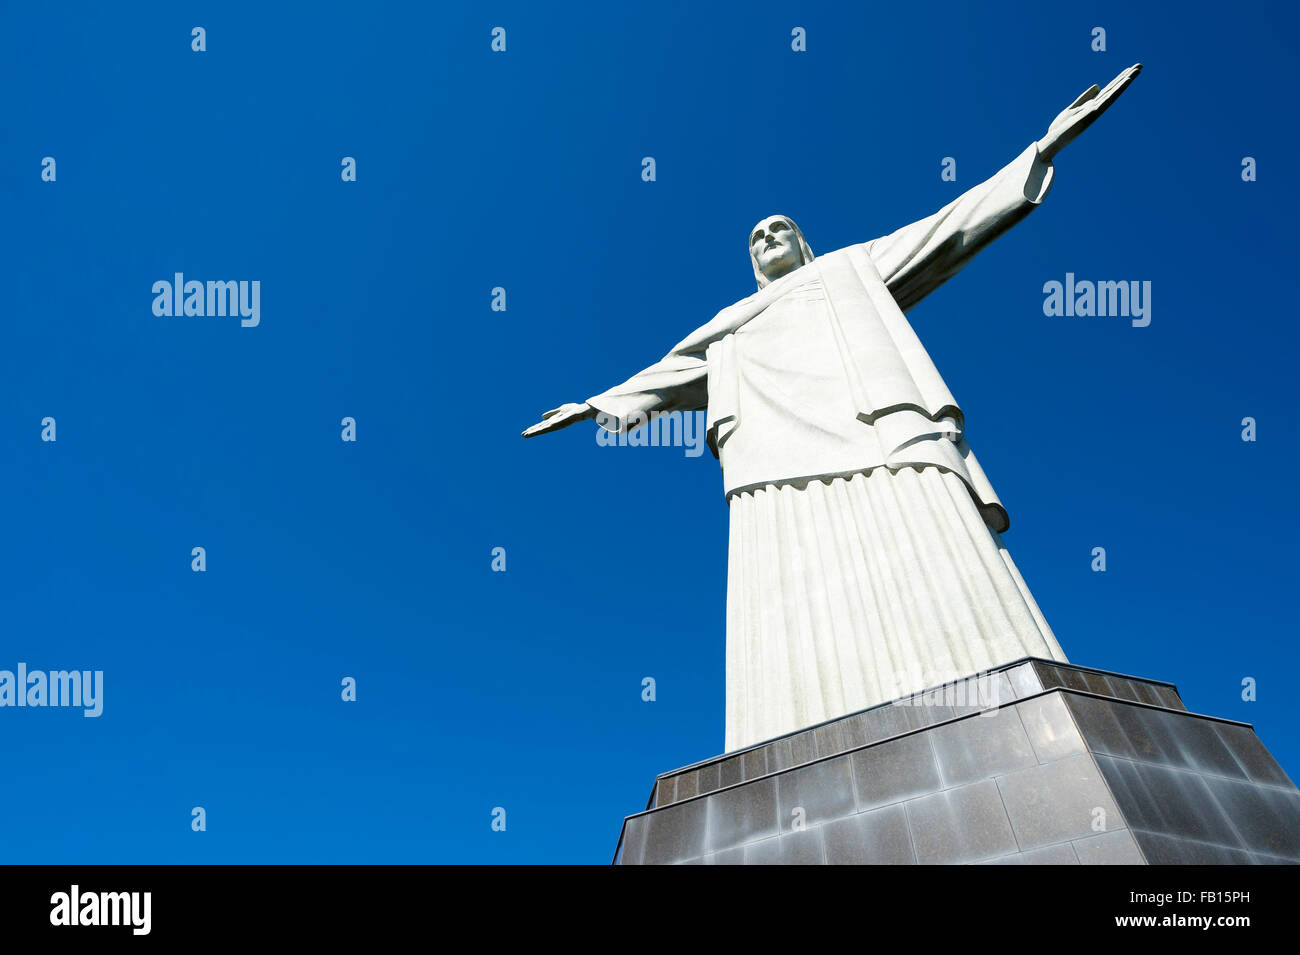 RIO DE JANEIRO, BRAZIL - MARCH 05, 2015: Statue of Christ the Redeemer stands on its base at the top of Corcovado - Stock Image